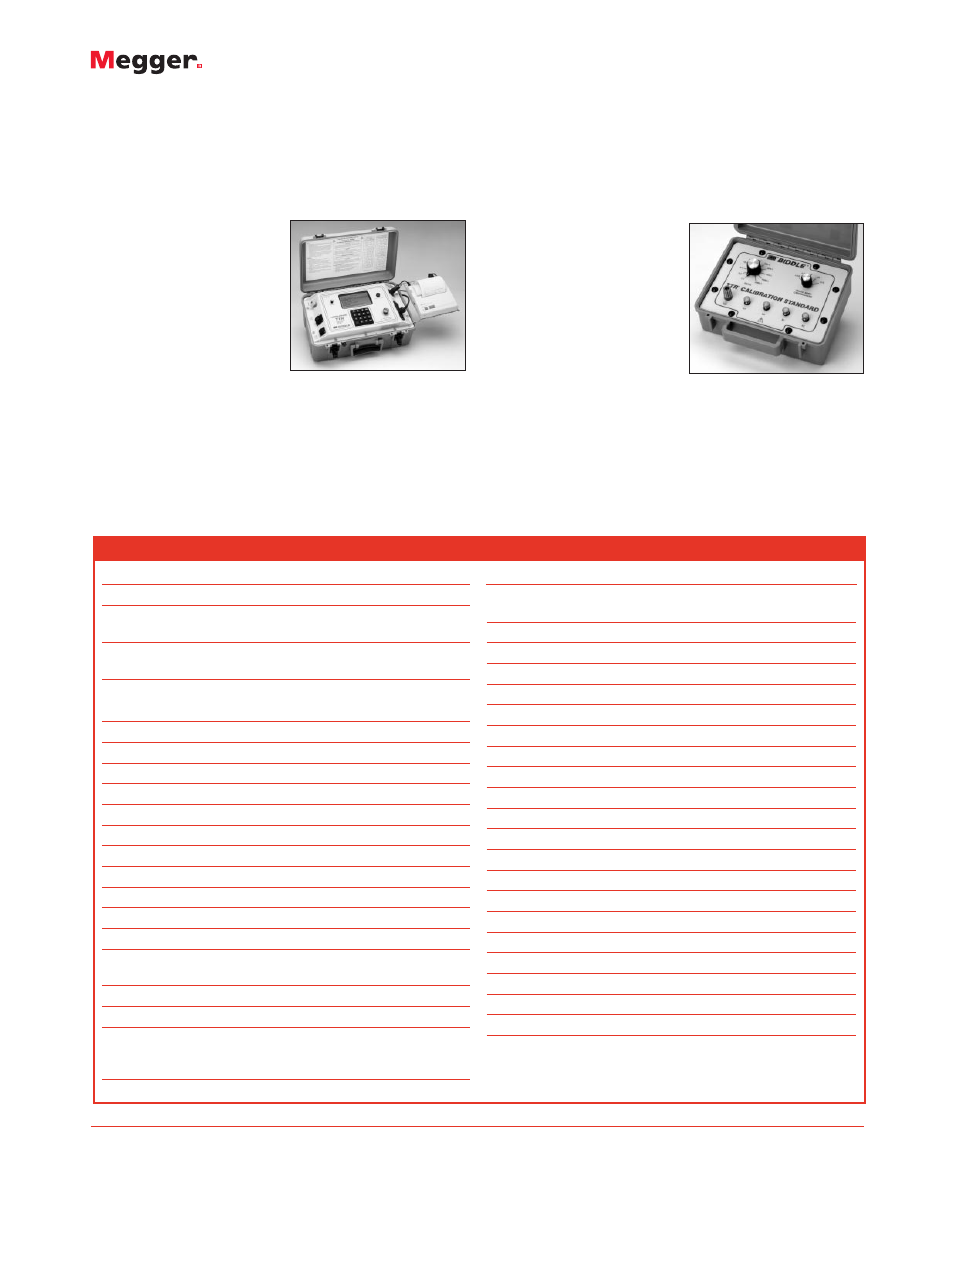 Three-phase ttr   Atec Megger-550503 User Manual   Page 4 / 4